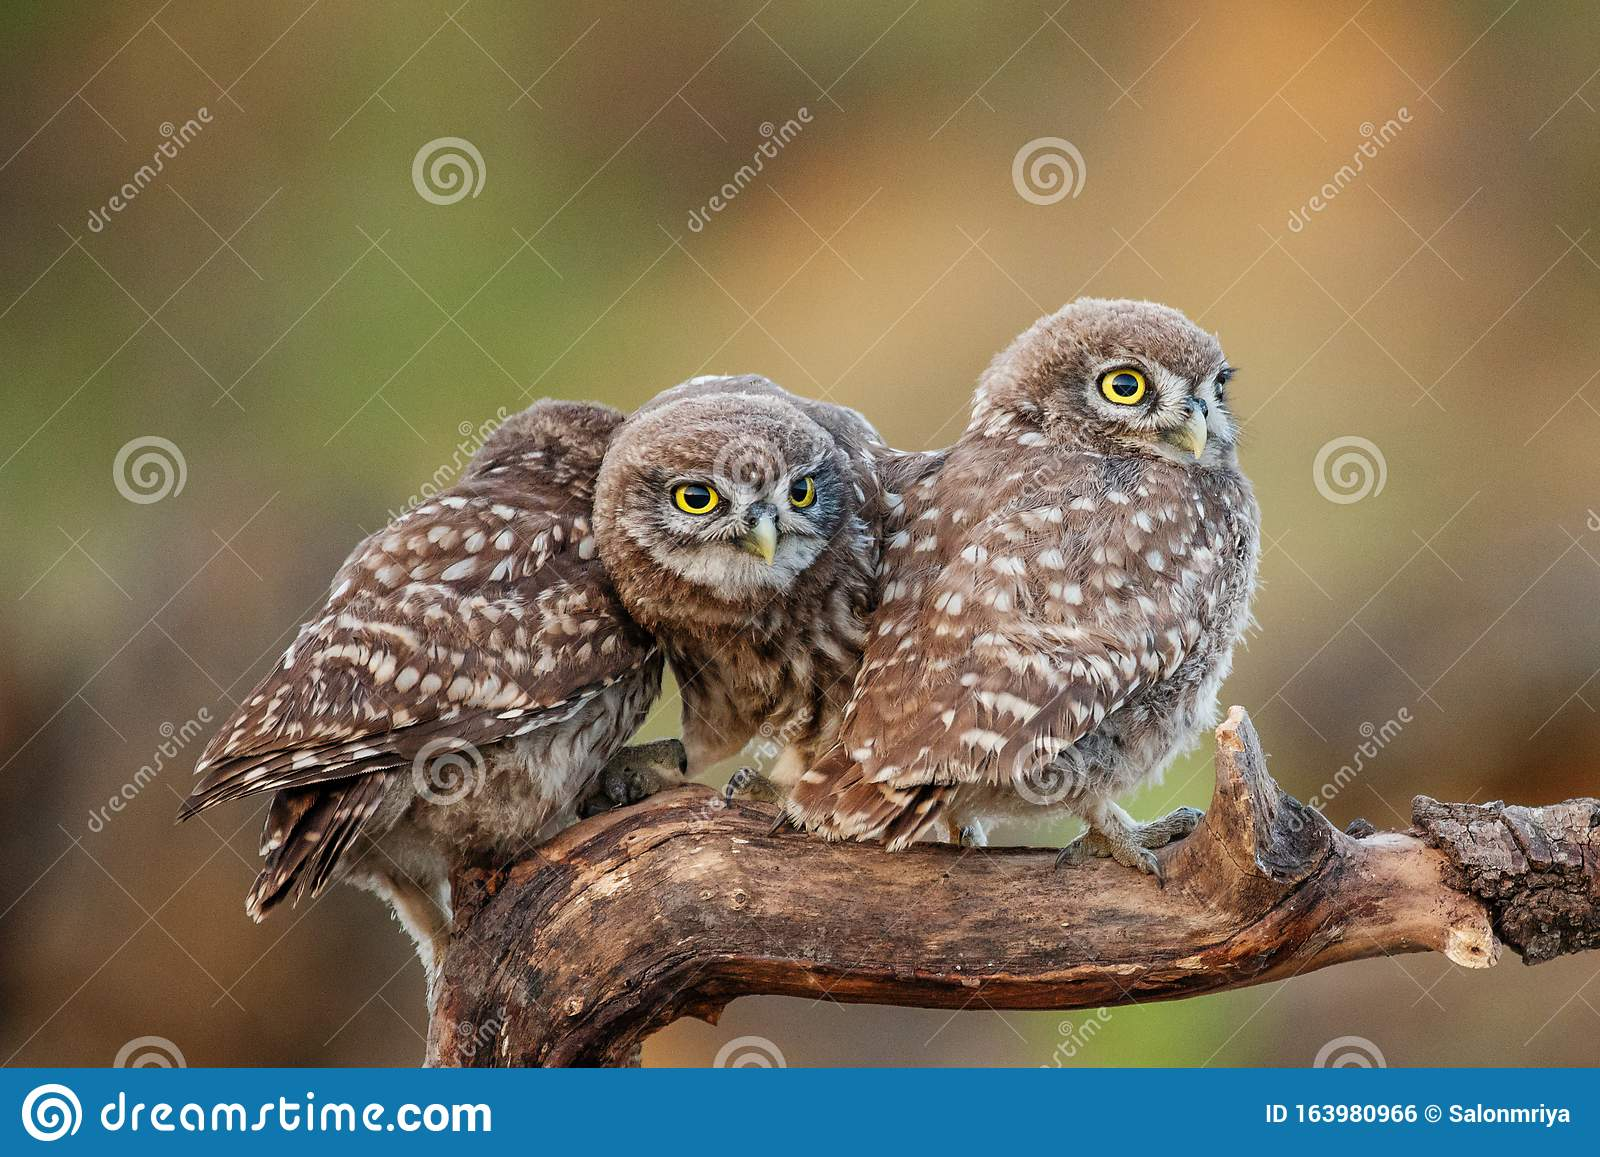 Three Young Little Owls Athene Noctua Sitting On A Stick